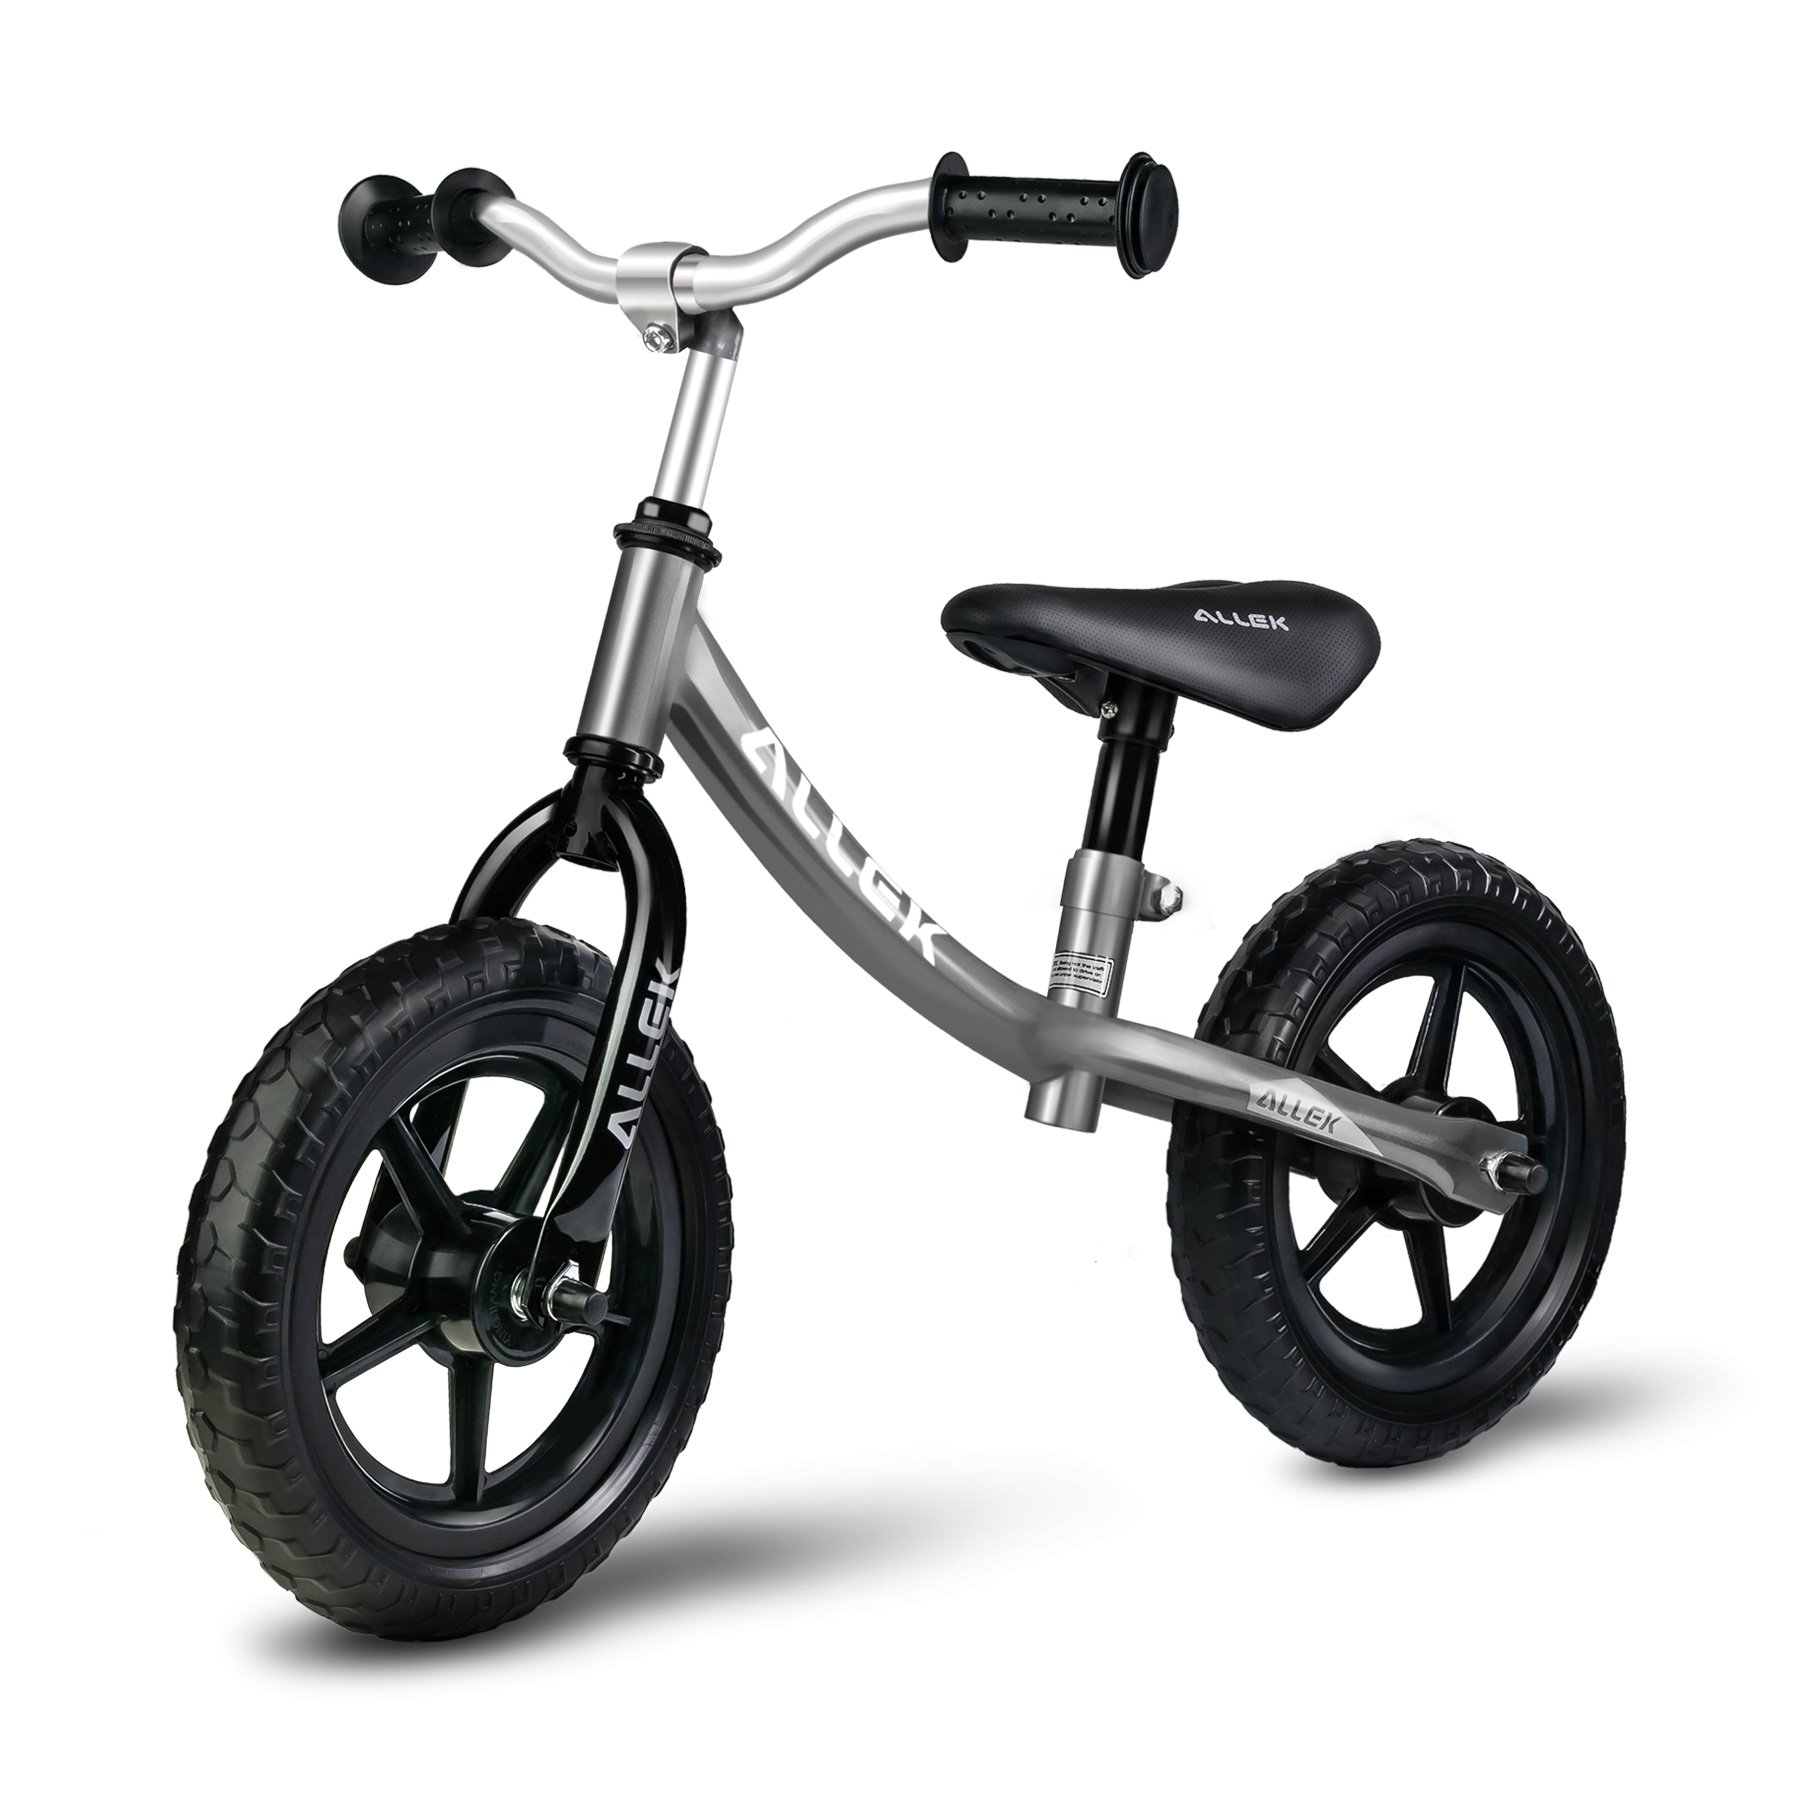 Allek Balance Bike for Kids & Toddlers, 12'' No-Pedal Balance Bike for Kids Boys Girls- Perfect for Balance Training Your 18 Month to 6 Years Old Child (Silver)